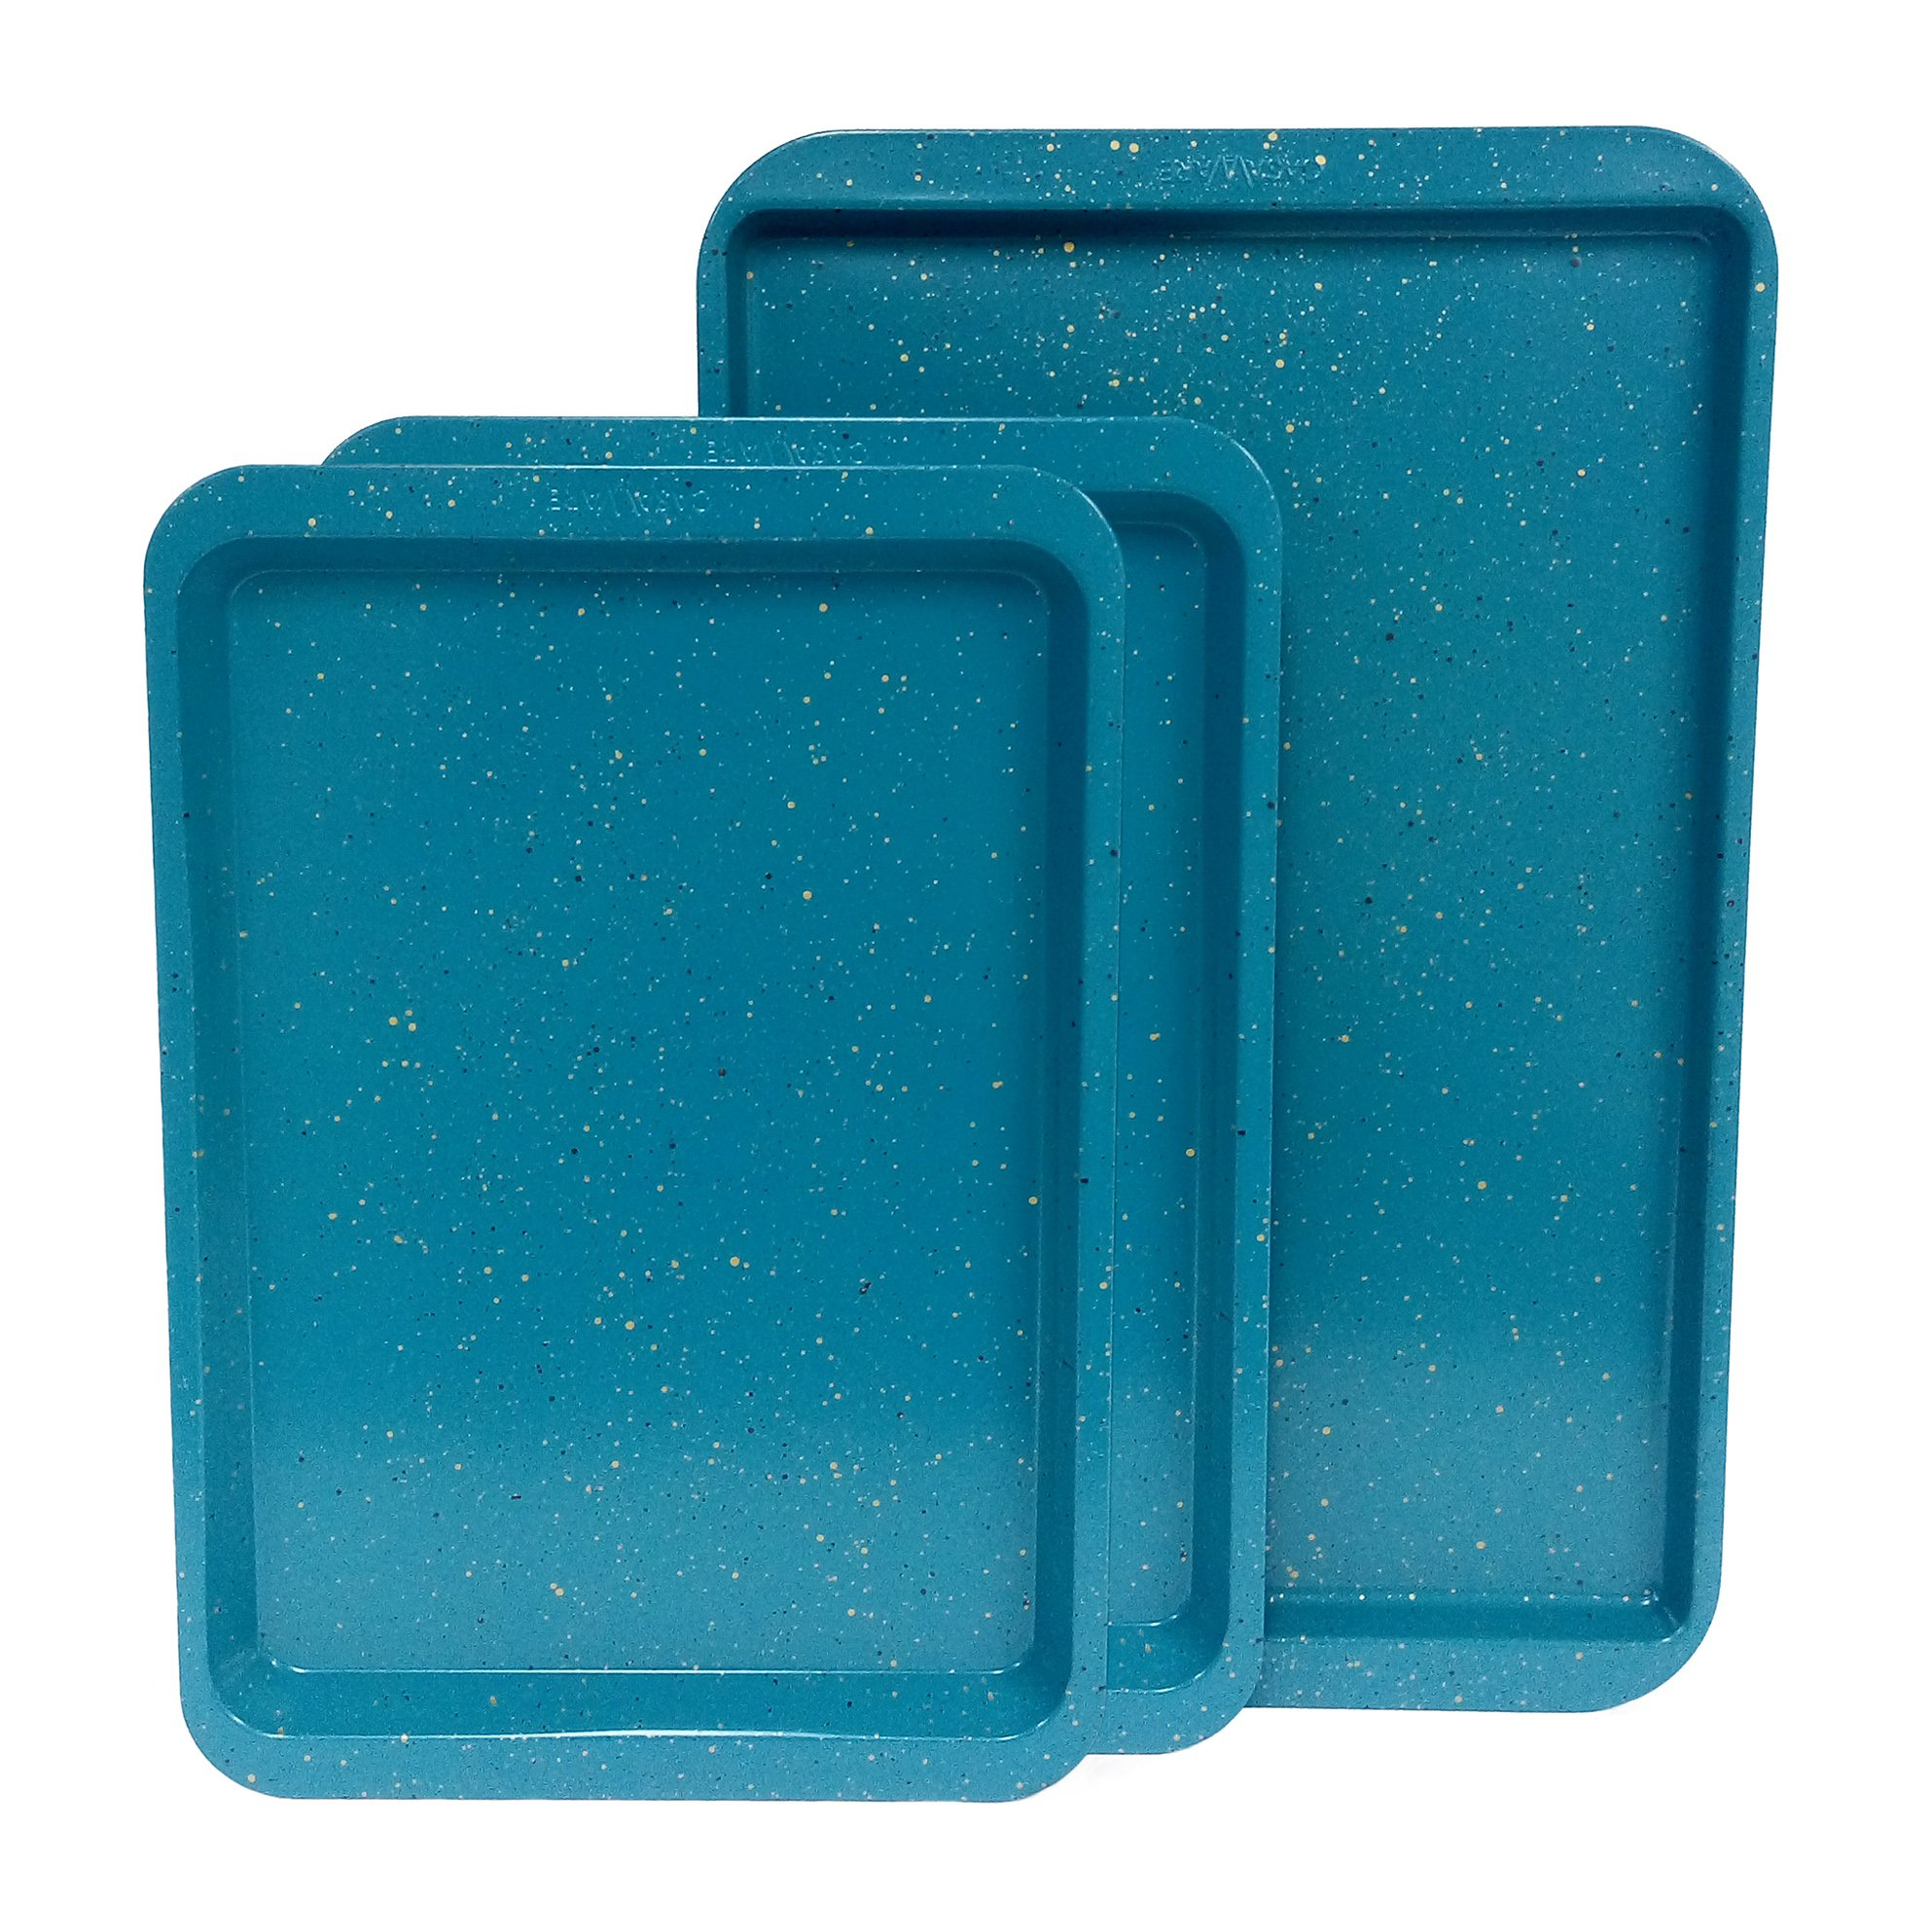 casaWare 3pc Multi-Size Cookie Sheet/Jelly Roll Pan Set (Blue Granite) by casaWare (Image #2)